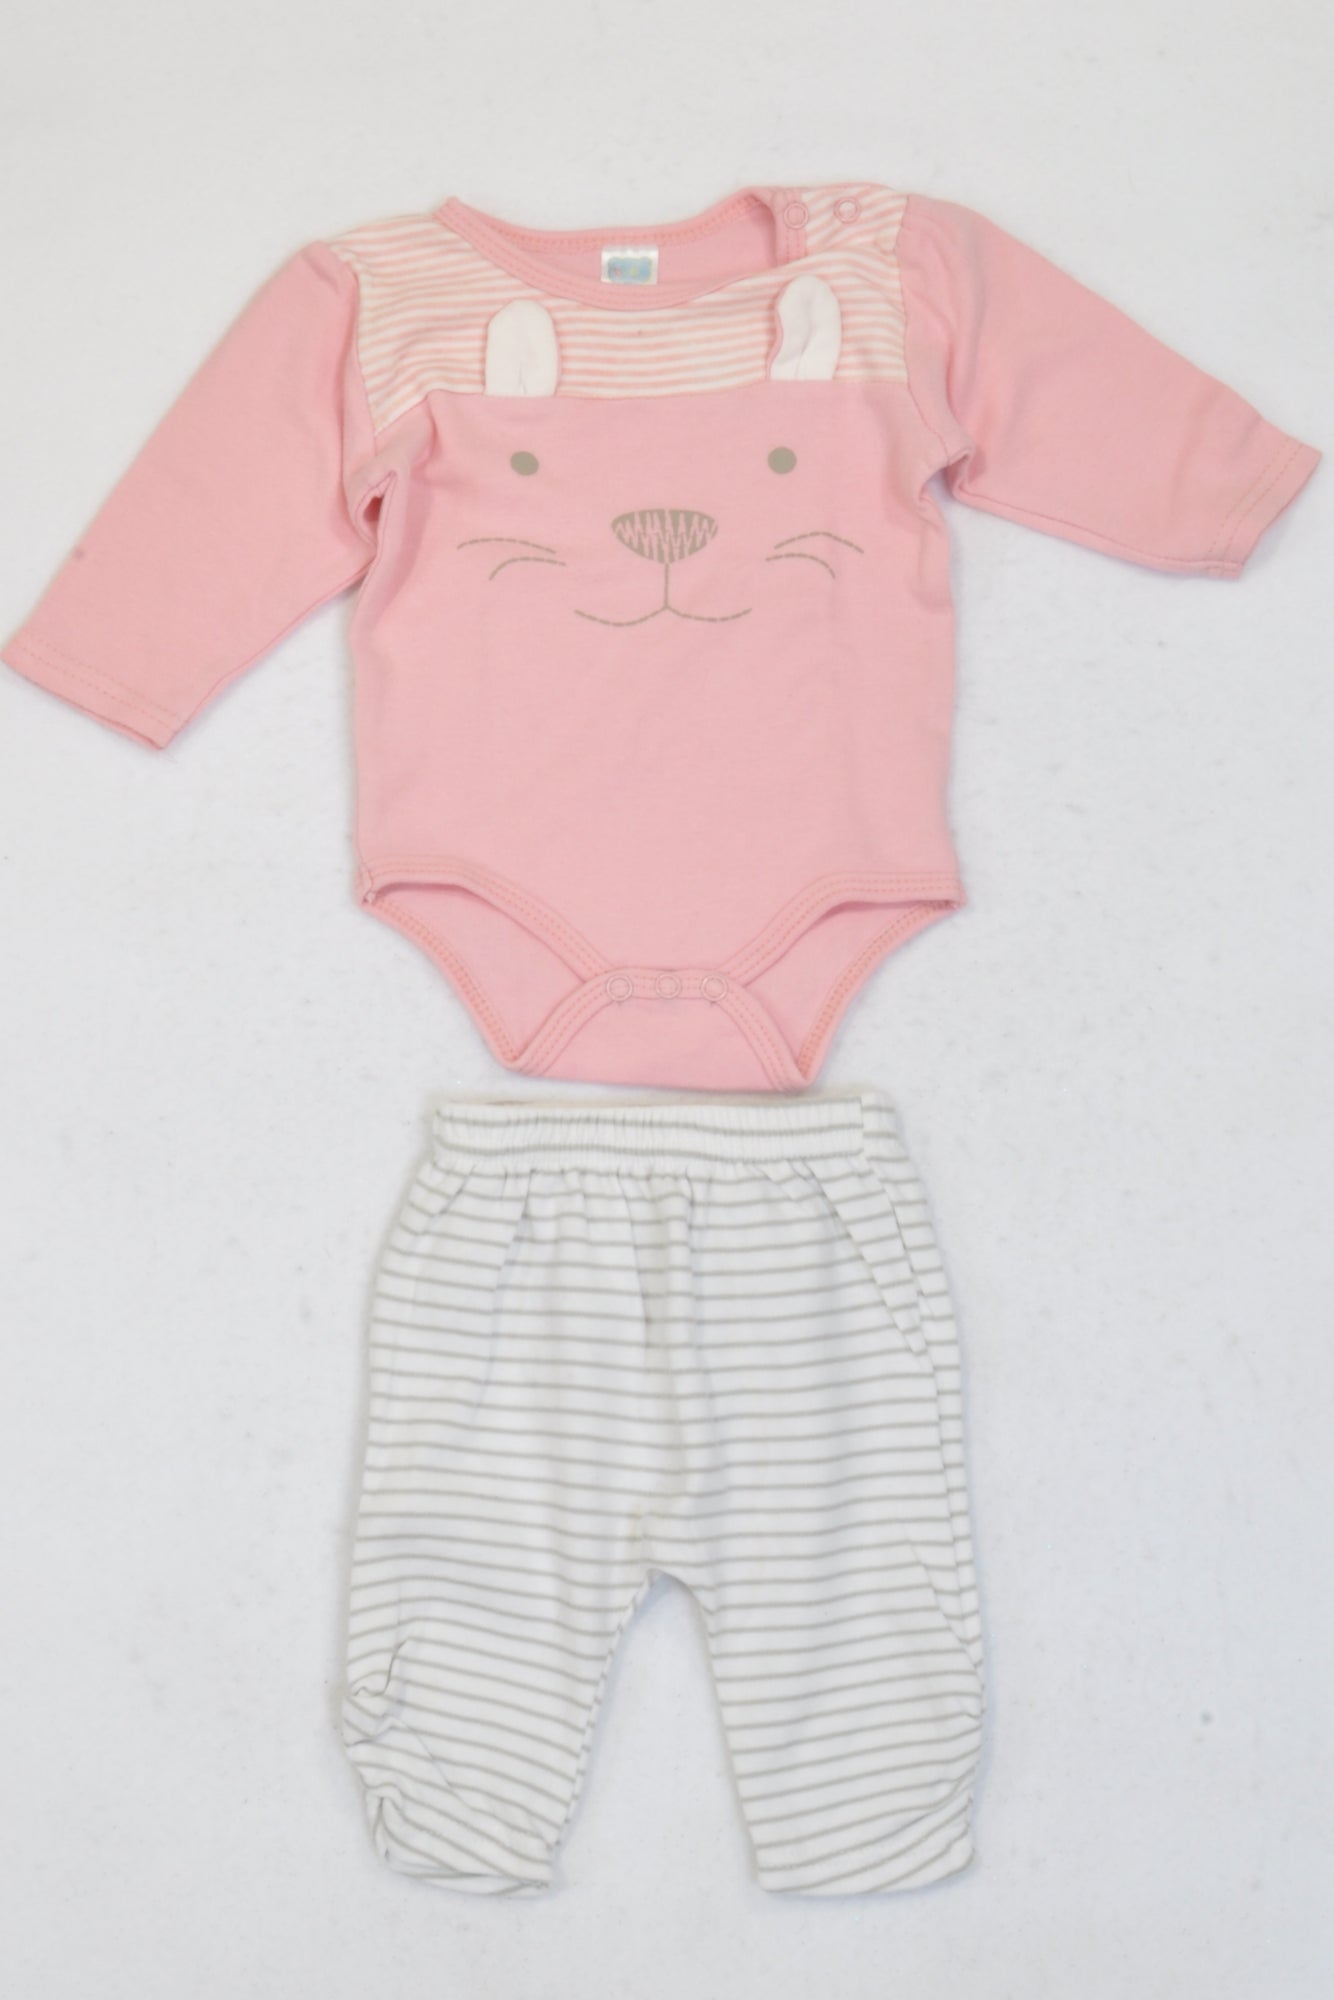 b41ac6e30 Ackermans Pink Kitty Baby Grow   Leggings Outfit Girls 0-3 months